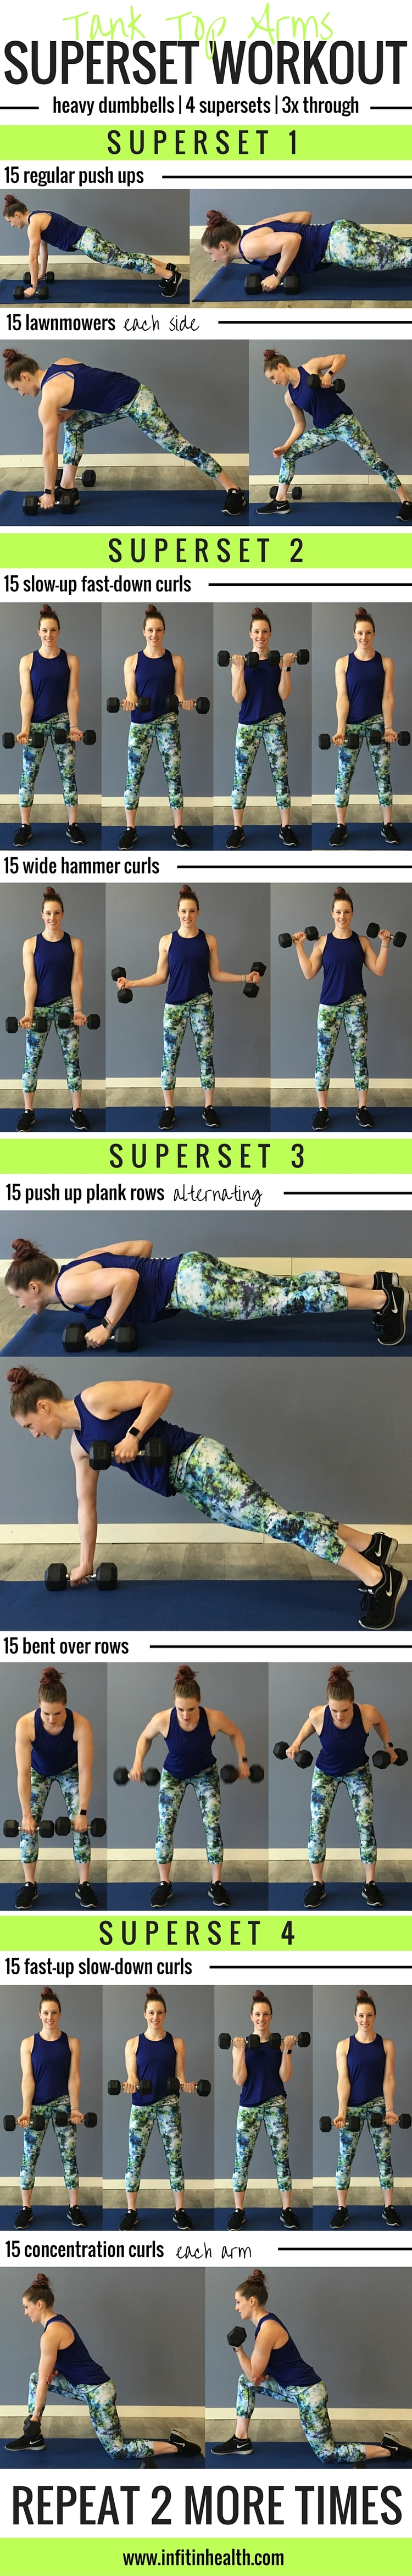 Tank Top Arms Superset Workout 3x3 Super Set Circuit Working It Out Pinterest